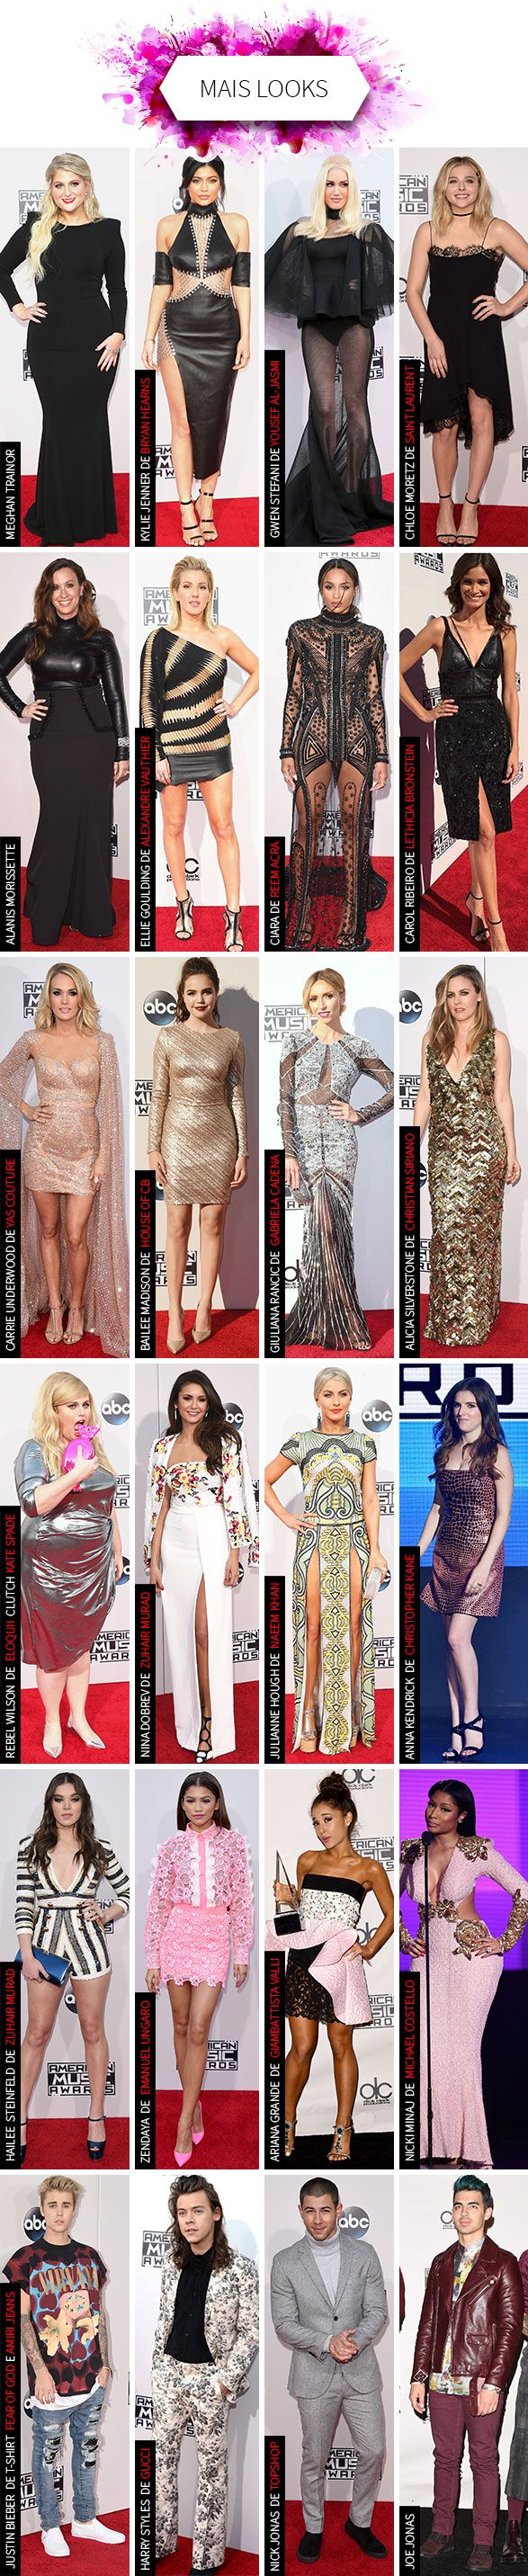 Looks de Kylie Jenner, Gwen Stefani, Ariana Grande e mais famosas no American Music Awards | AMA's red carpet best looks